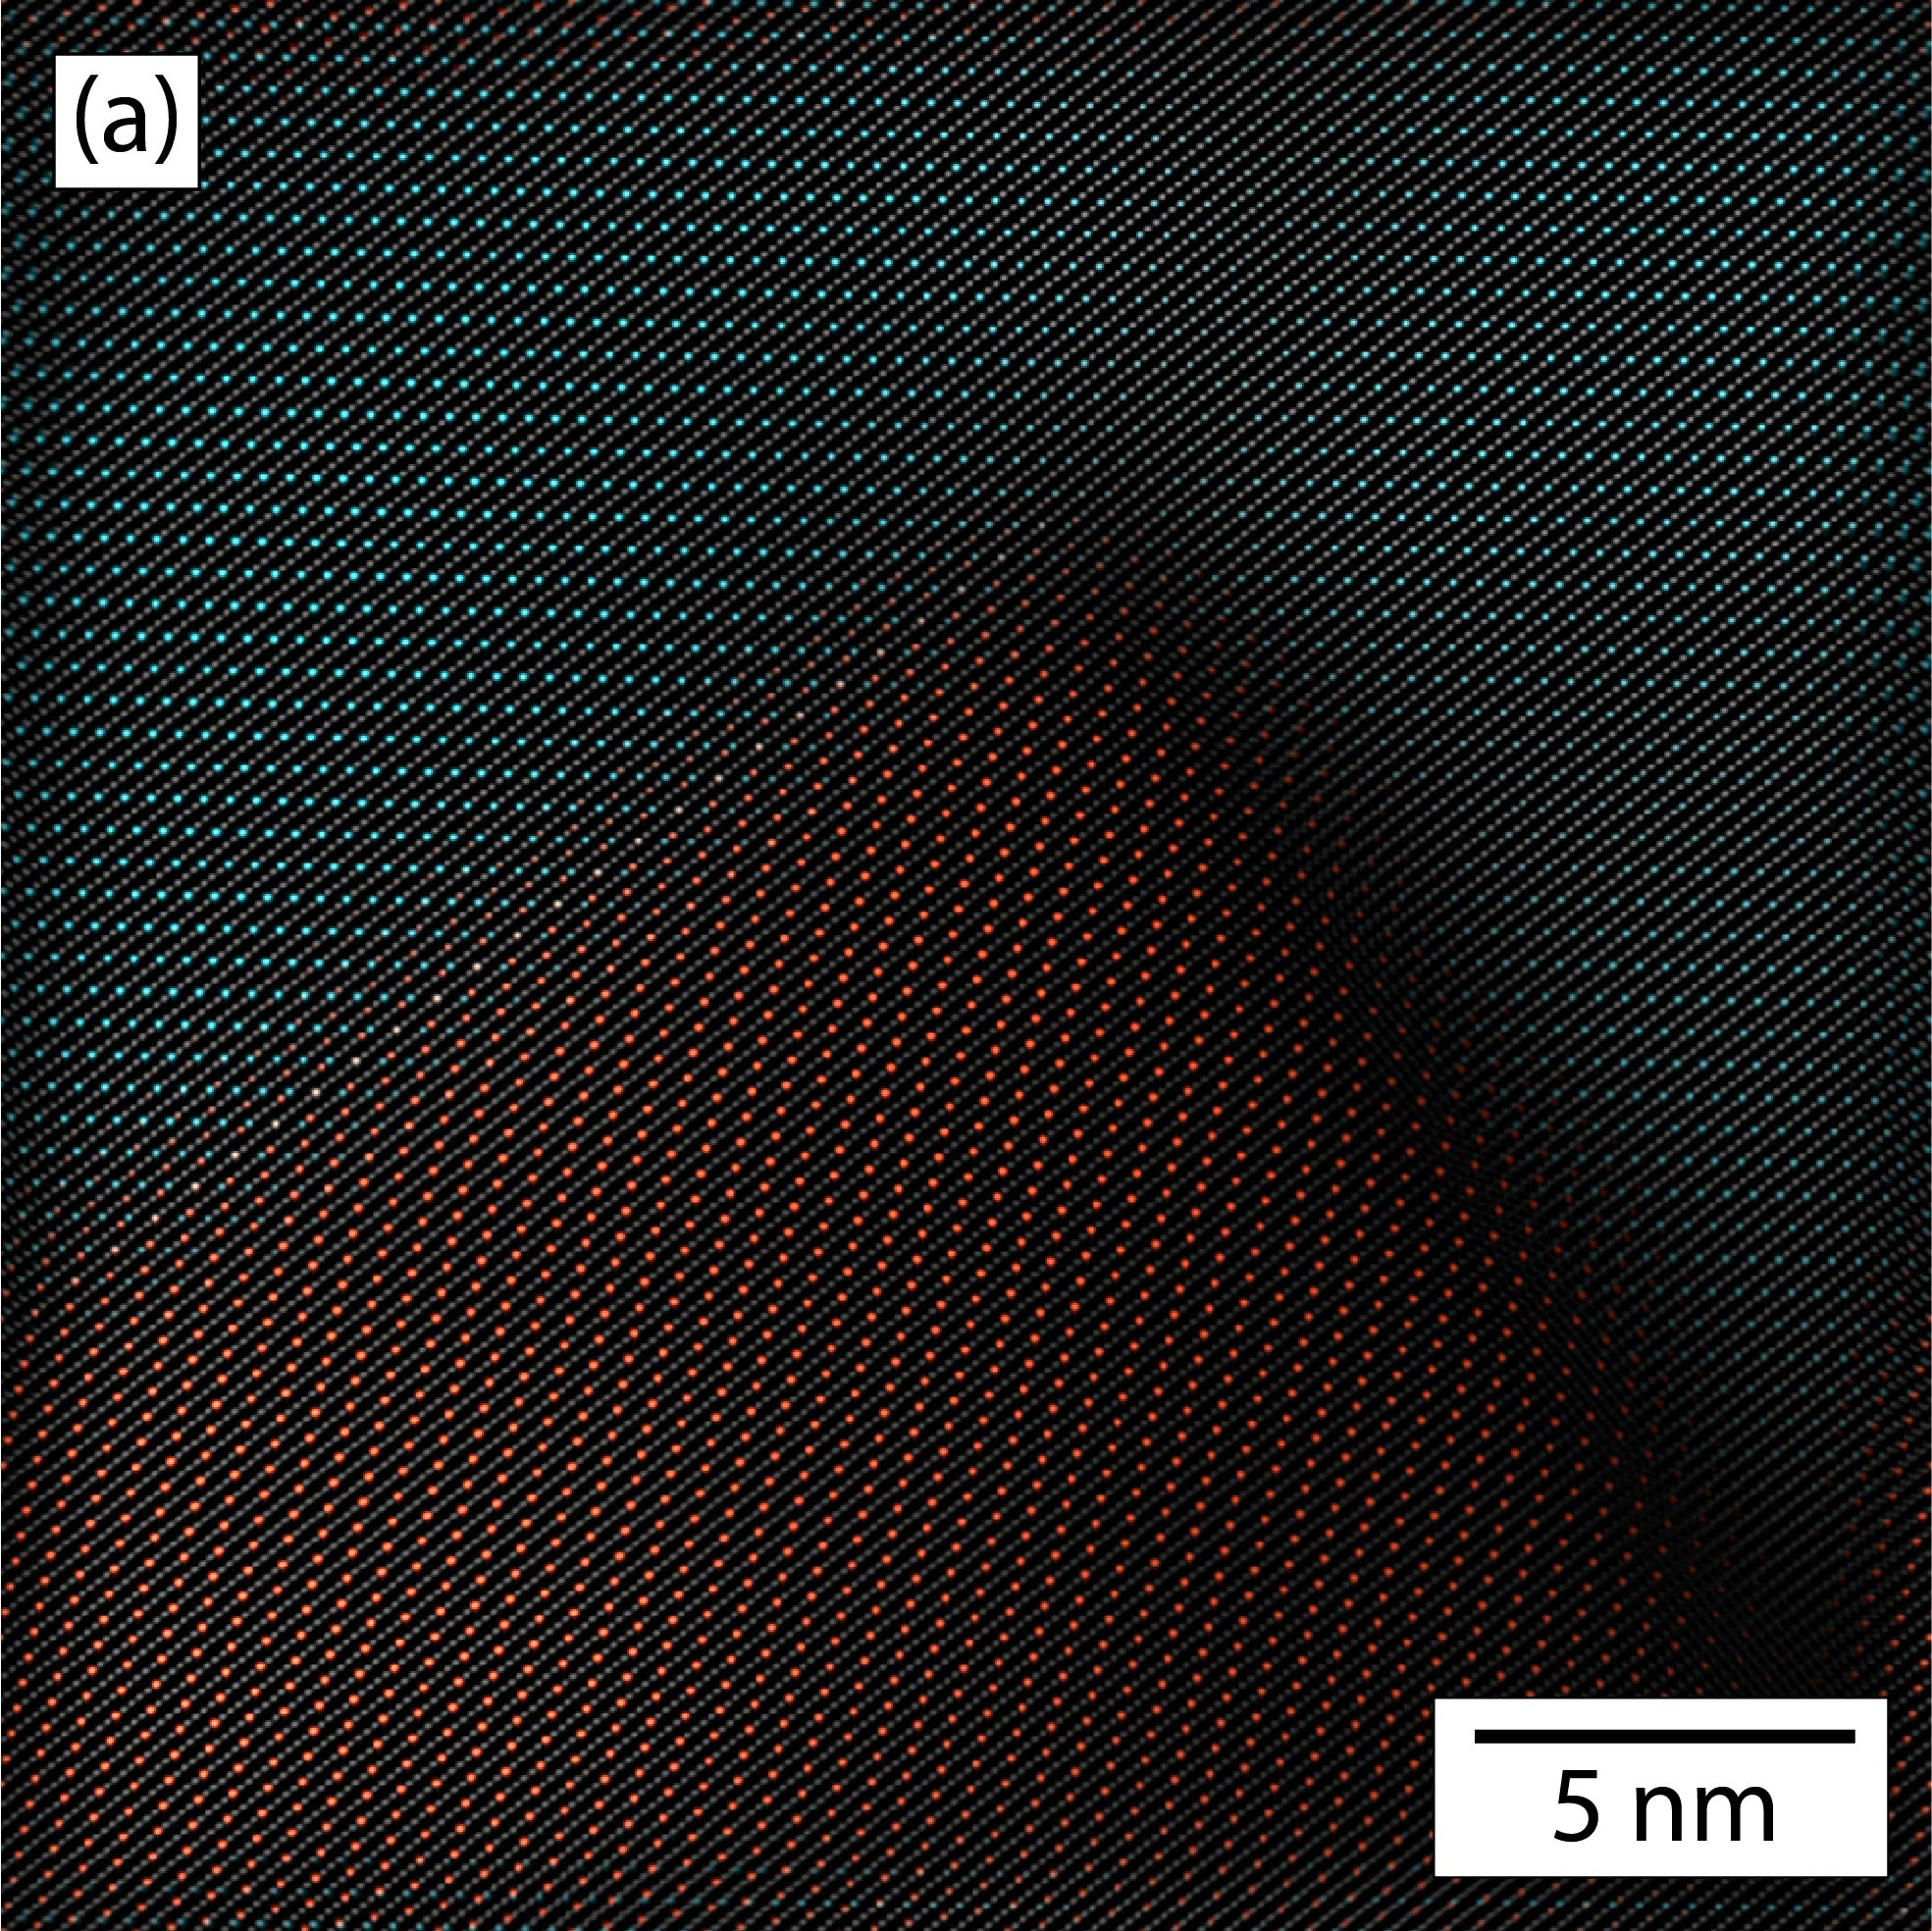 A filtered atomic resolution High-Angle Annular Dark Field (HAADF) image